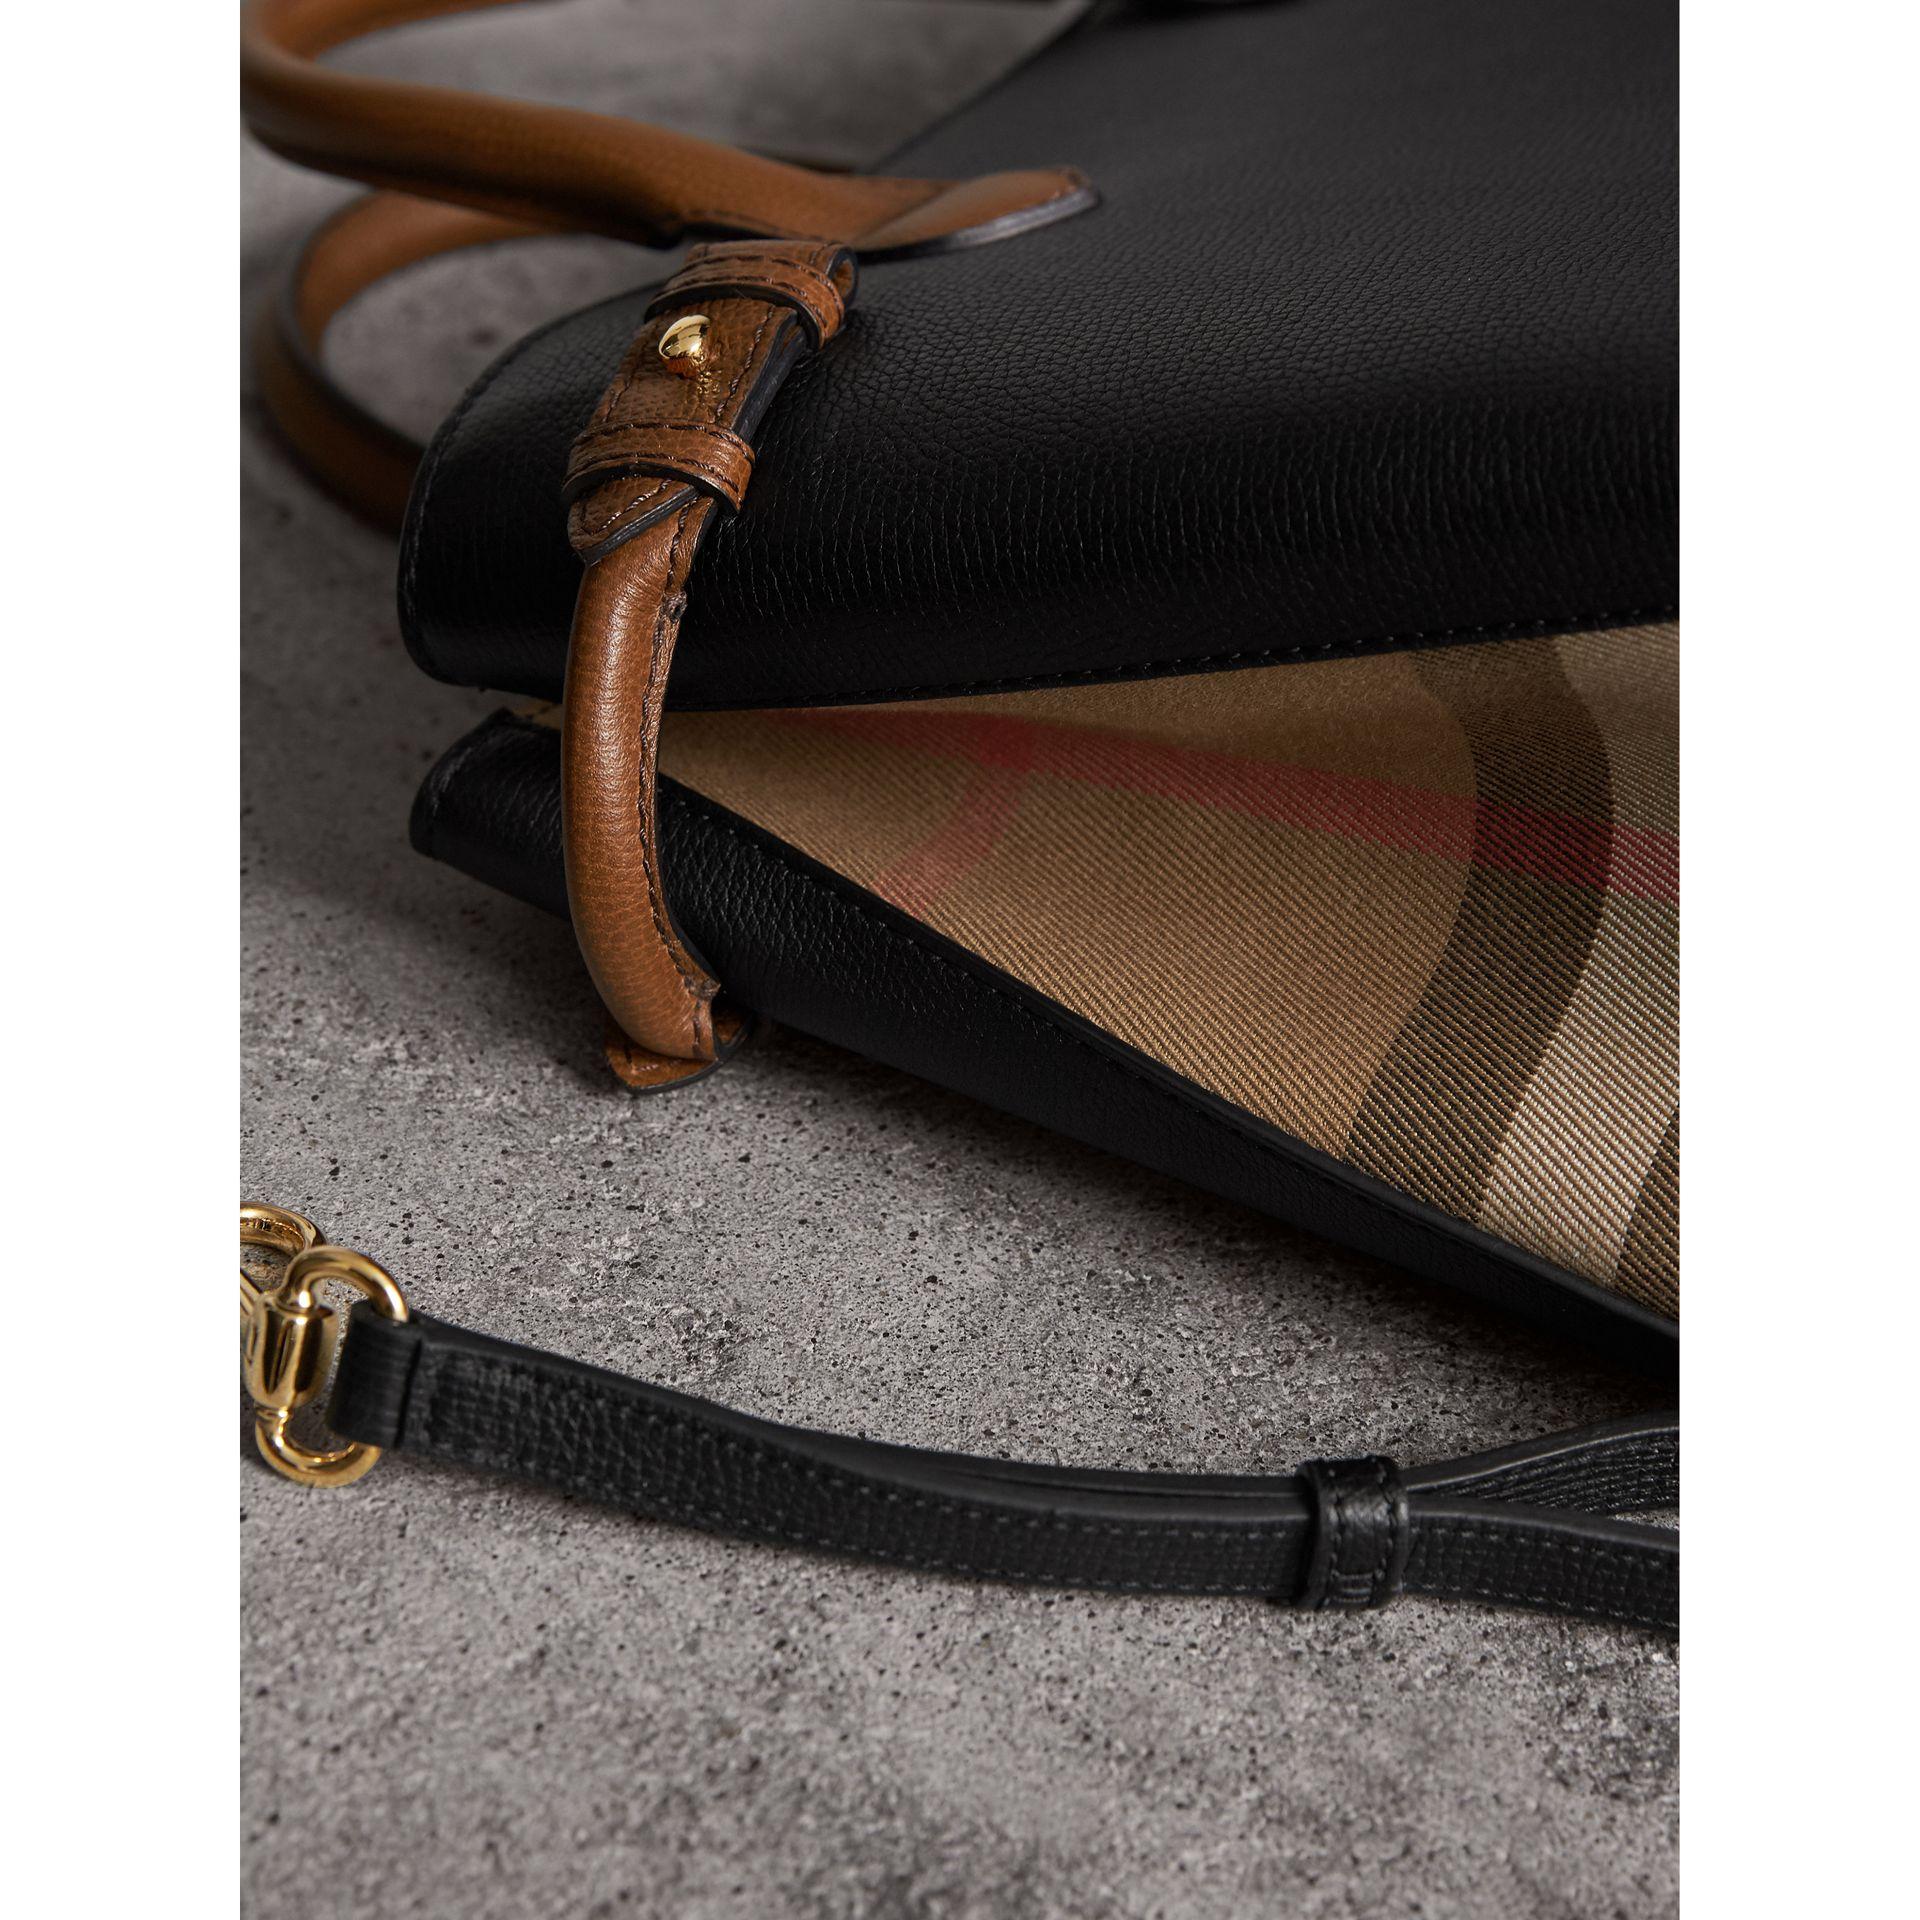 Sac The Banner moyen en cuir bicolore (Noir/hâle) - Femme | Burberry - photo de la galerie 6